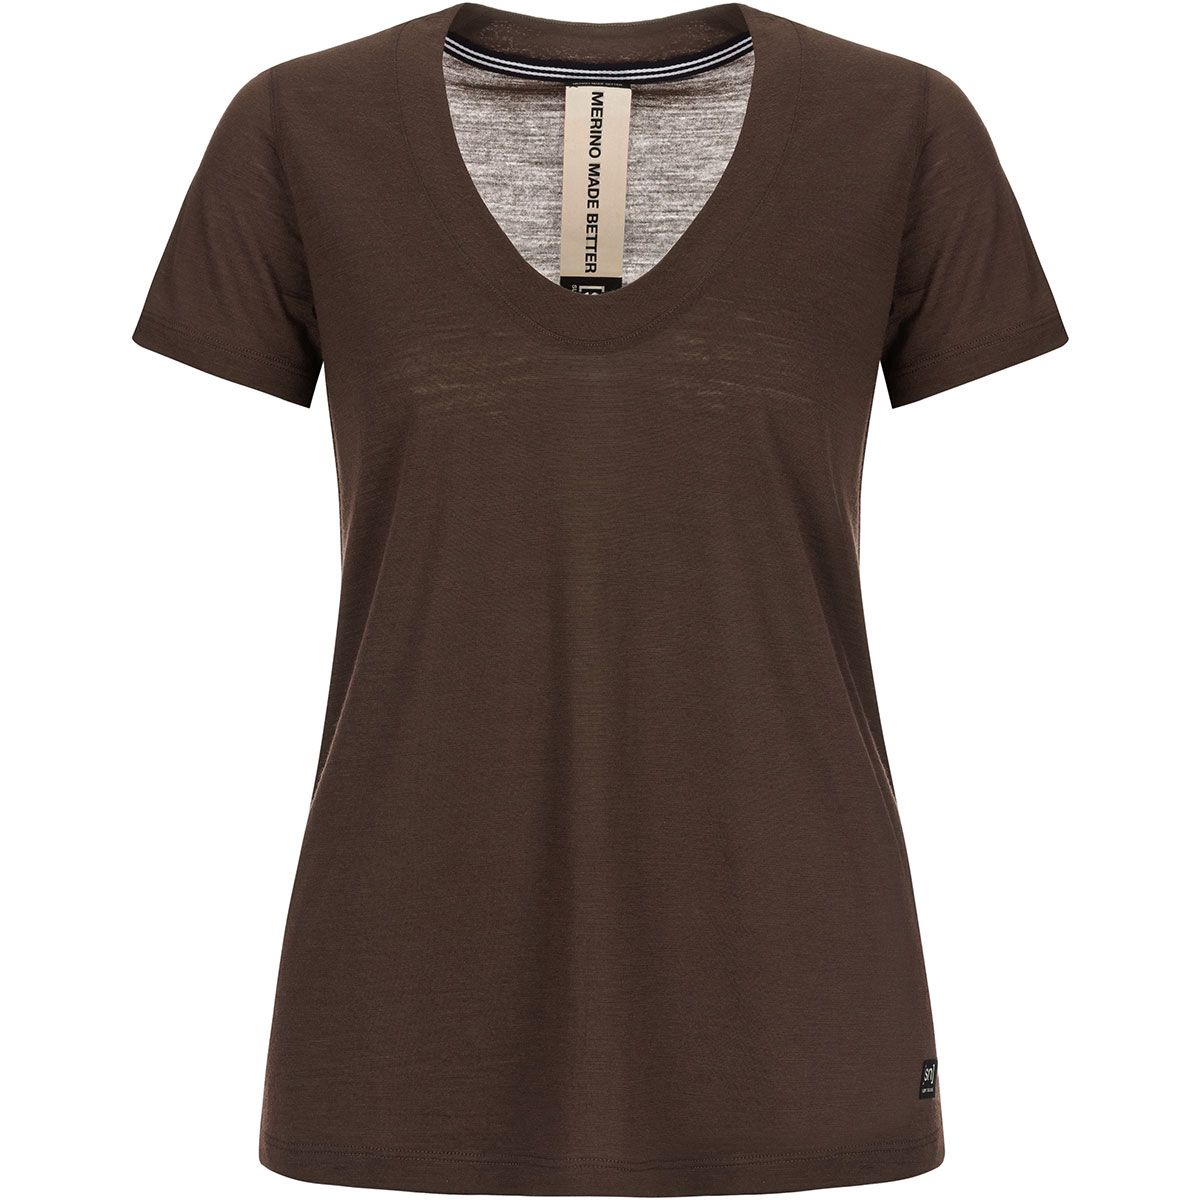 Super.Natural Damen City T-Shirt (Größe XS, Braun) | T-Shirts Merino > Damen